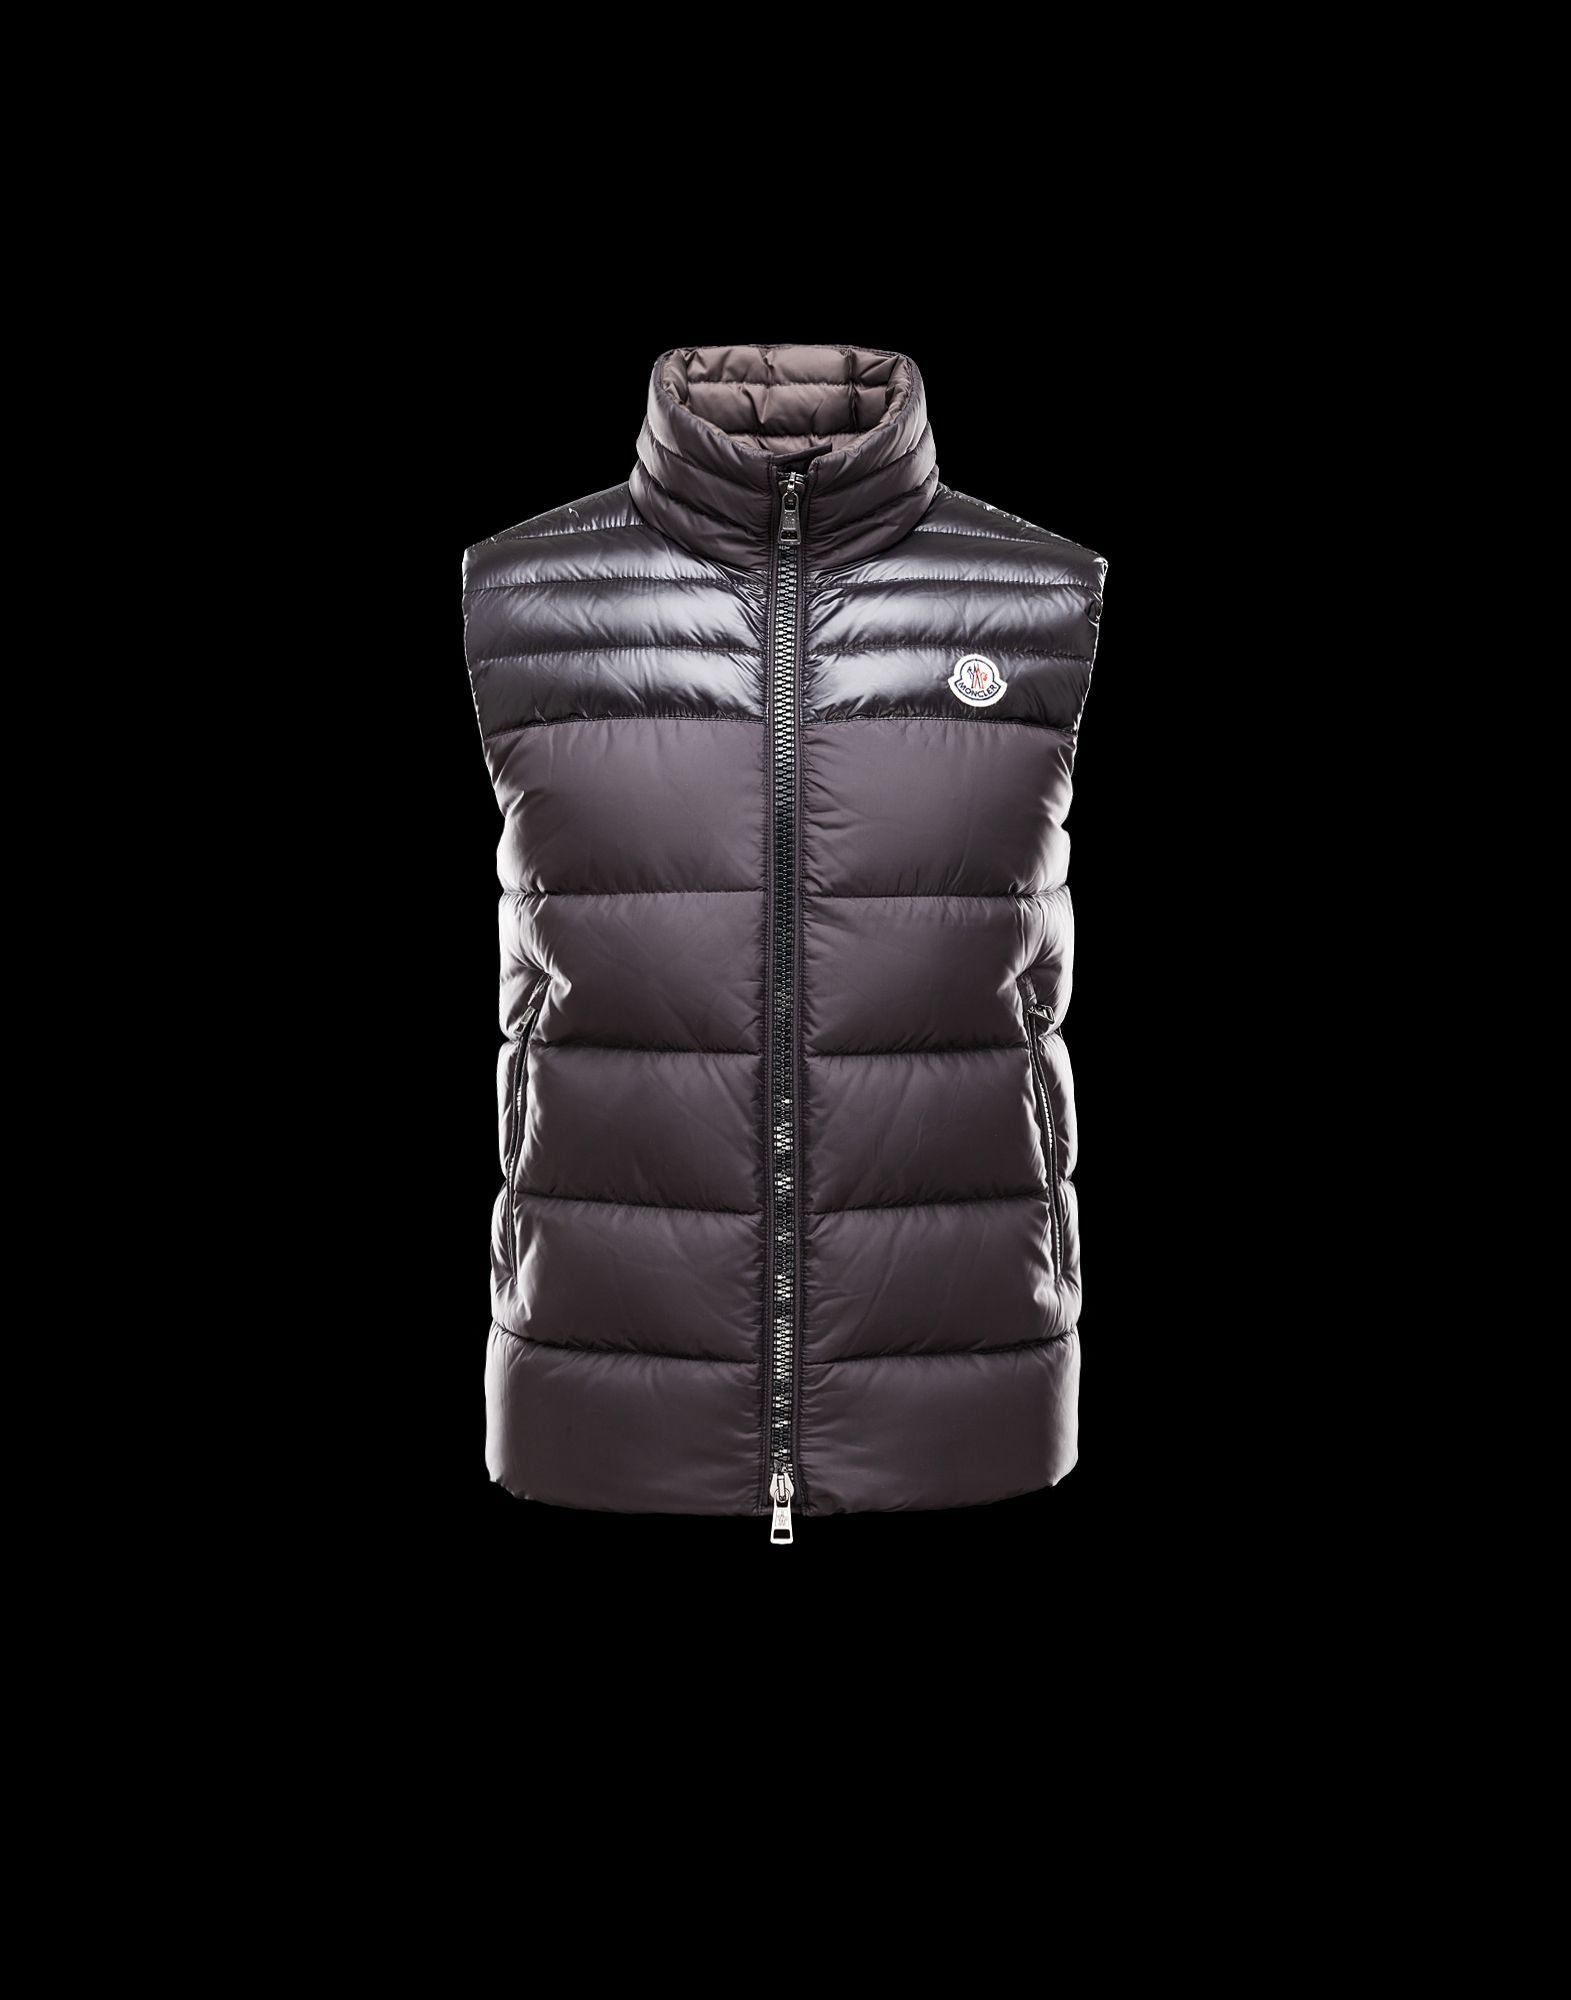 Moncler Mens Vest | Online the New Moncler Collection. Discover the  Autumn-Winter Trends